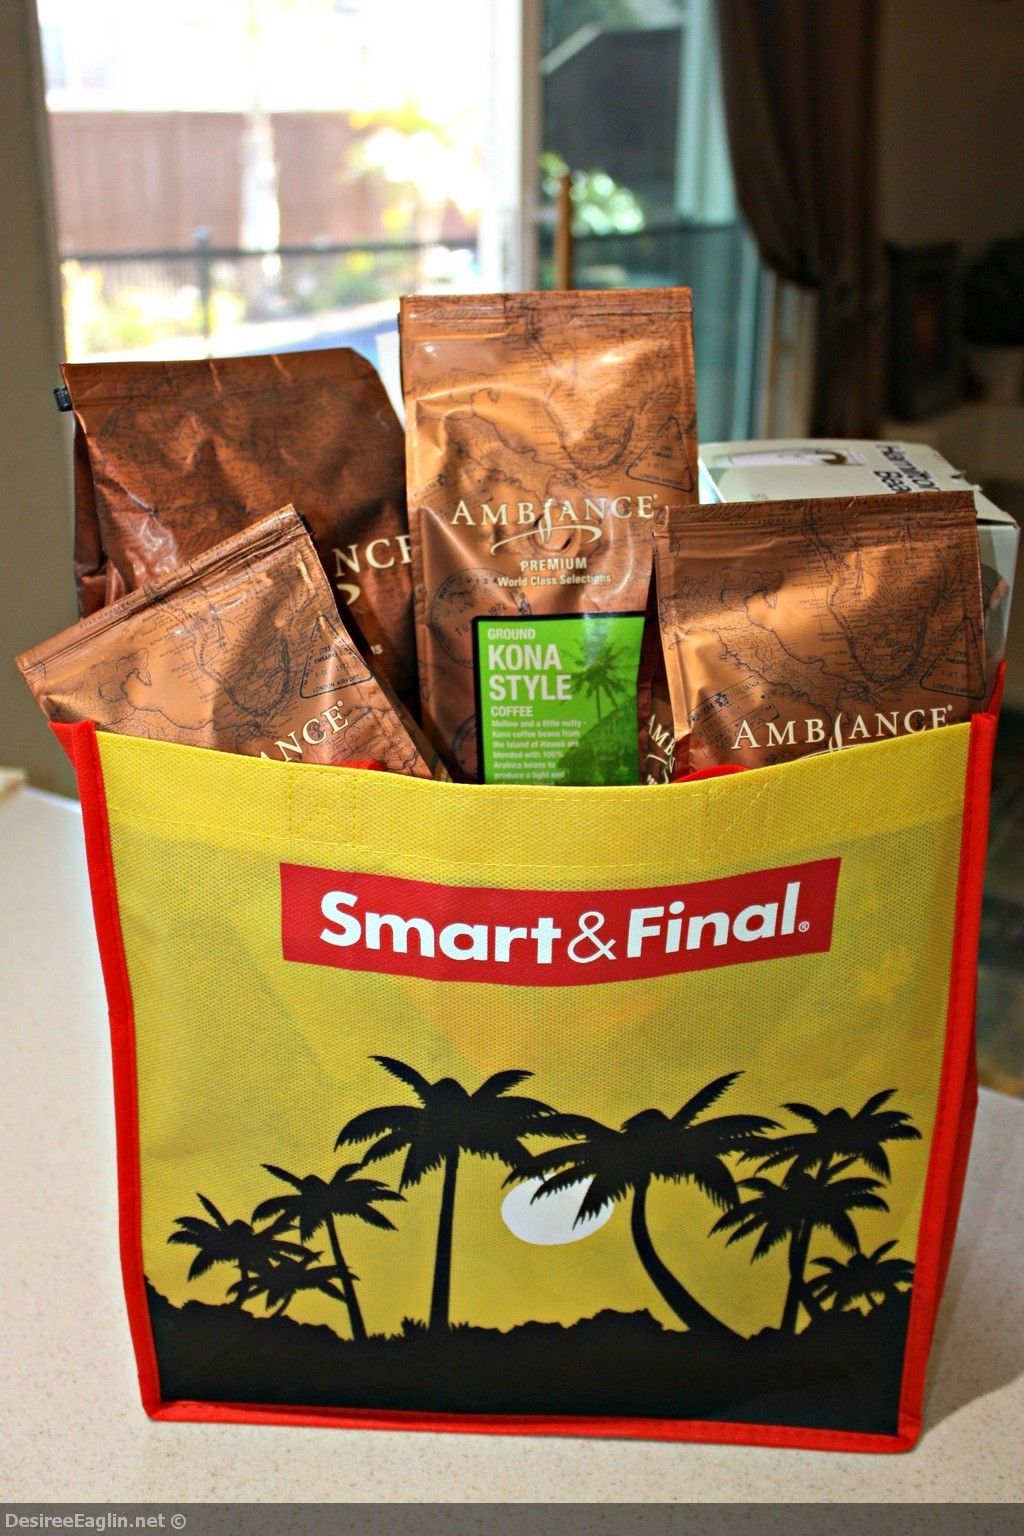 Smart and Final, Ambiance, Coffee, #ChooseSmart